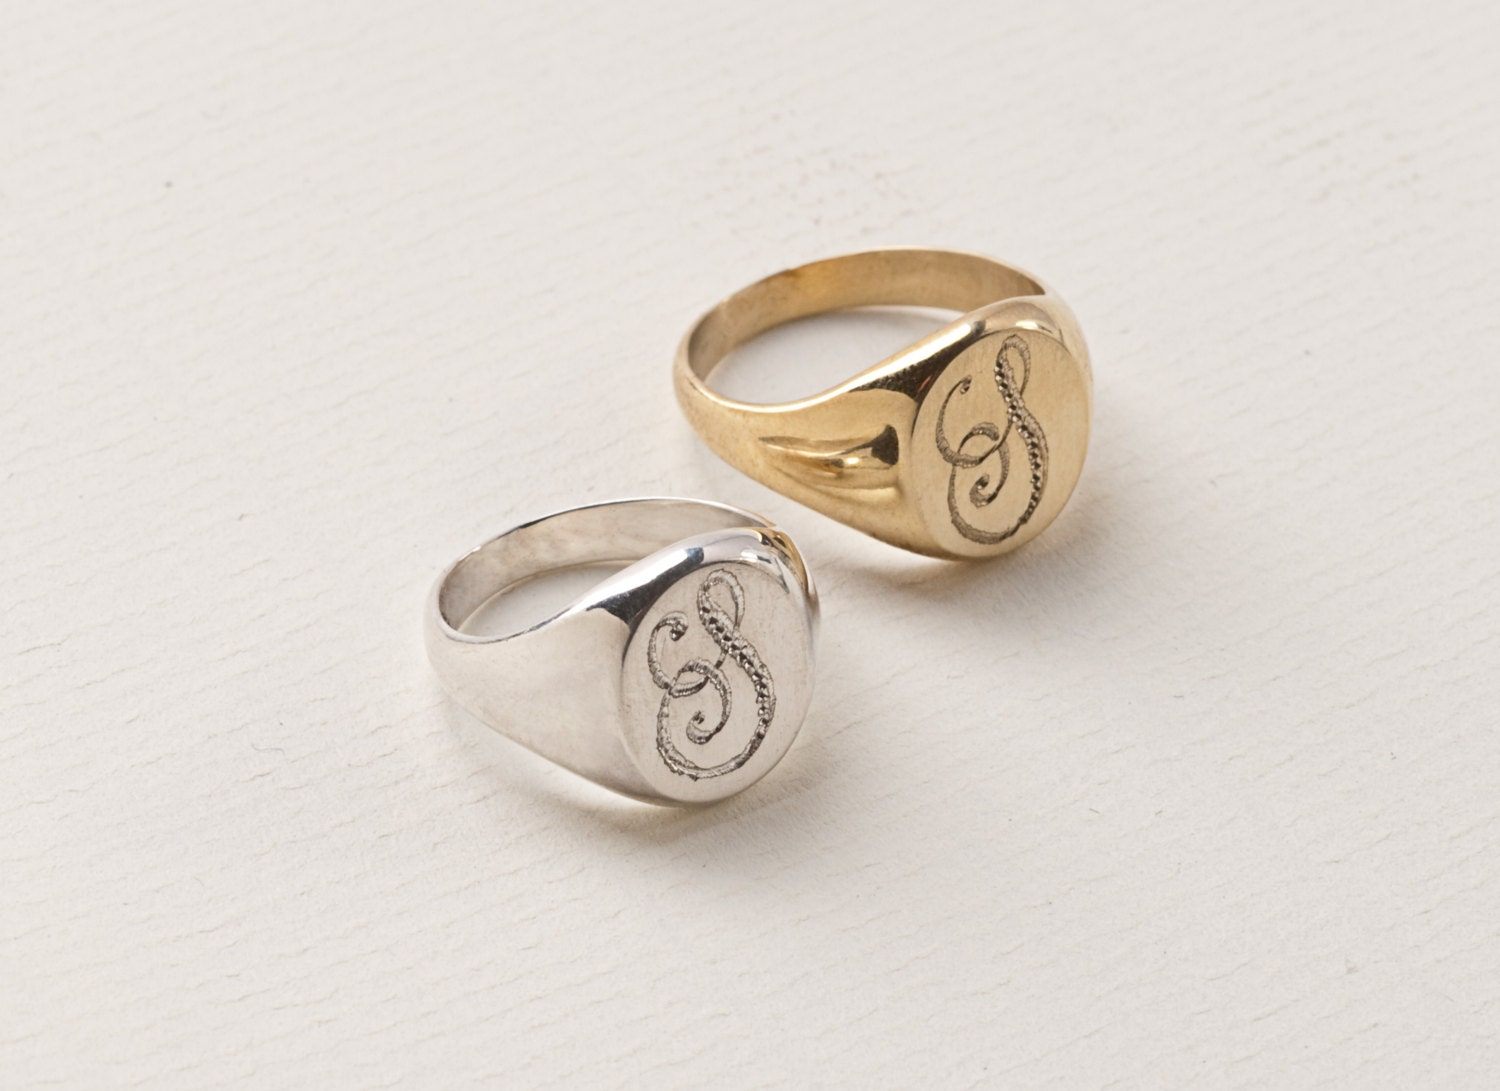 Rounded Pinky Monogram Ring Signet Ring Initial By SheRaJewelry